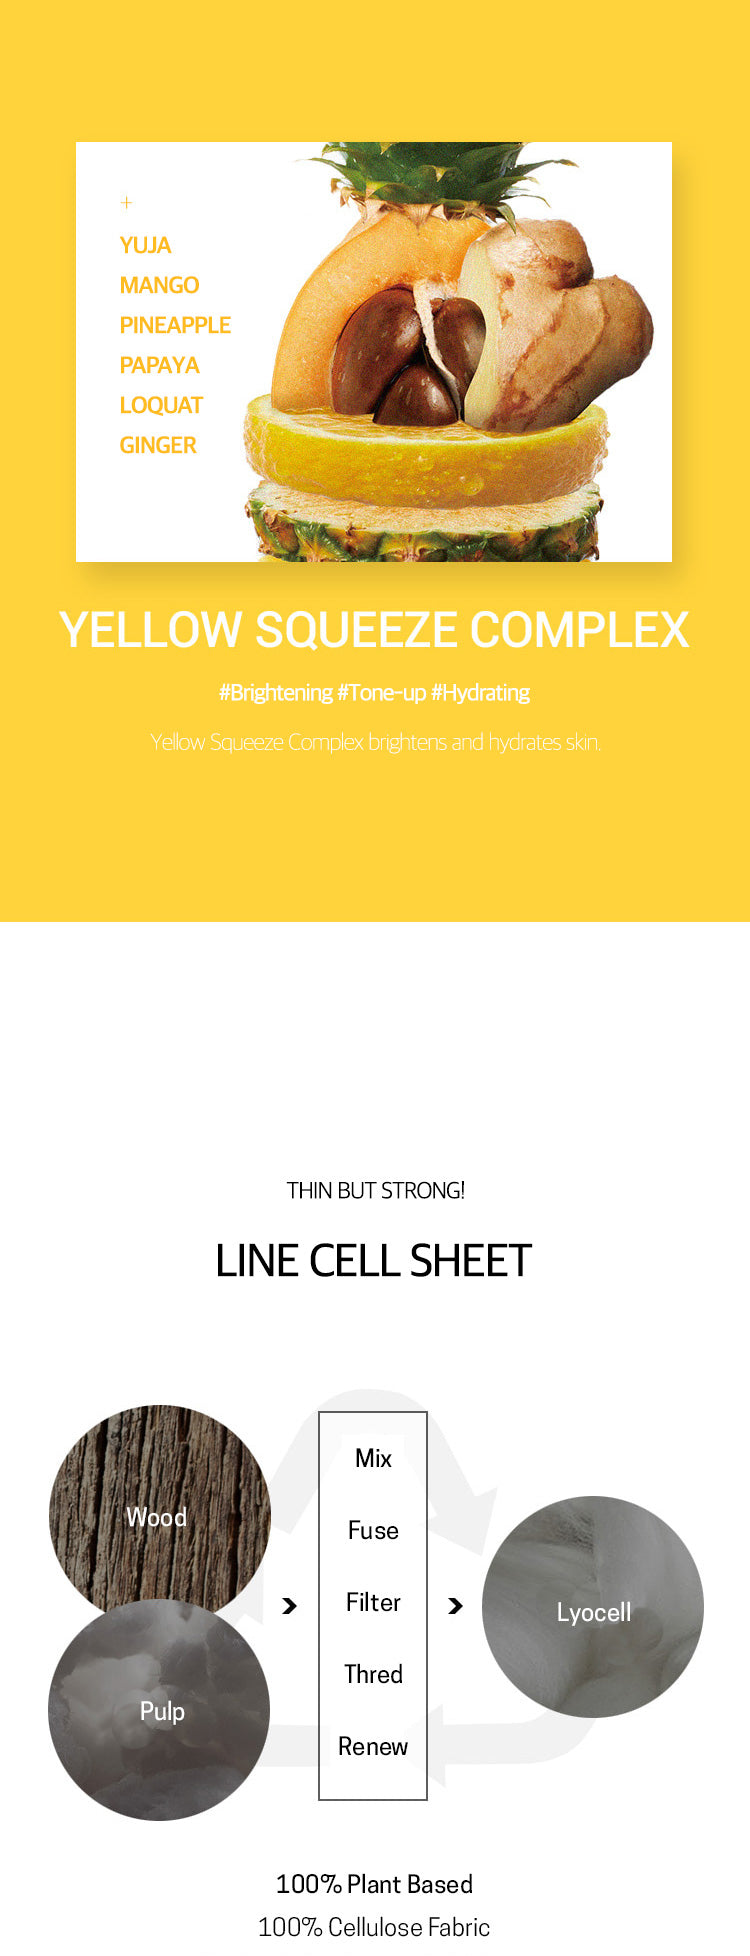 yellowsqueeze-3